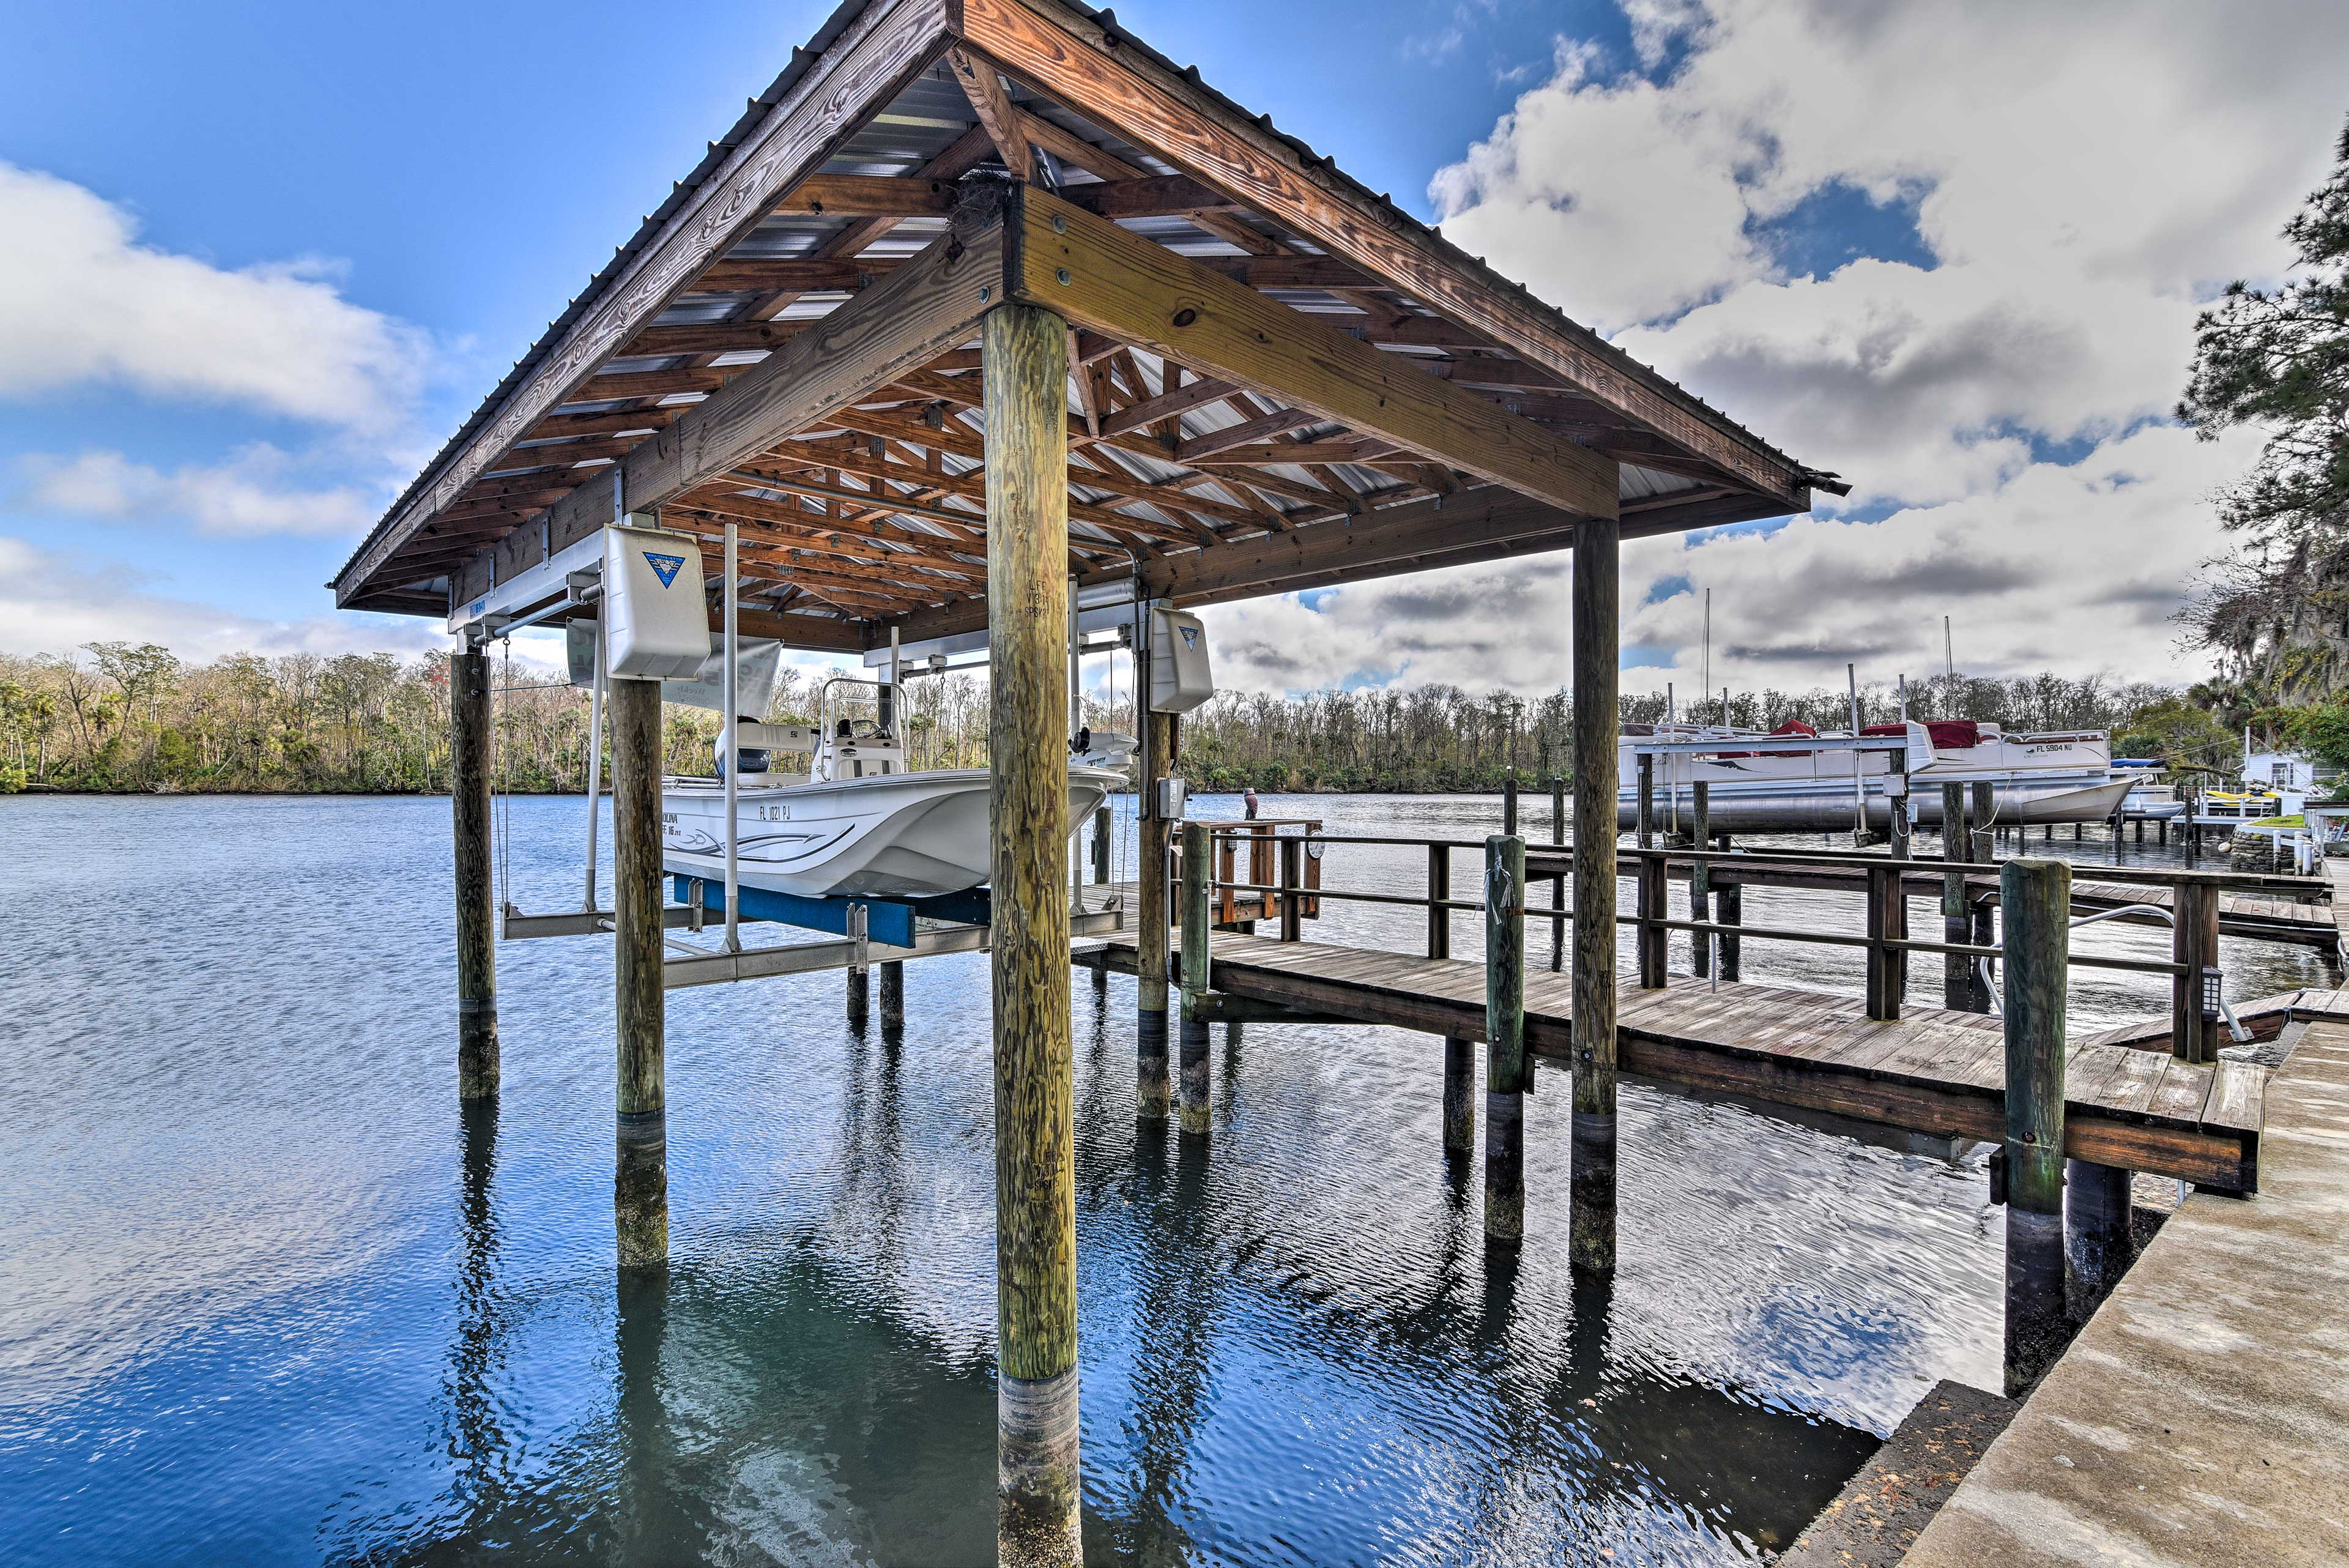 You can kayak, boat, or fish right off of the dock.